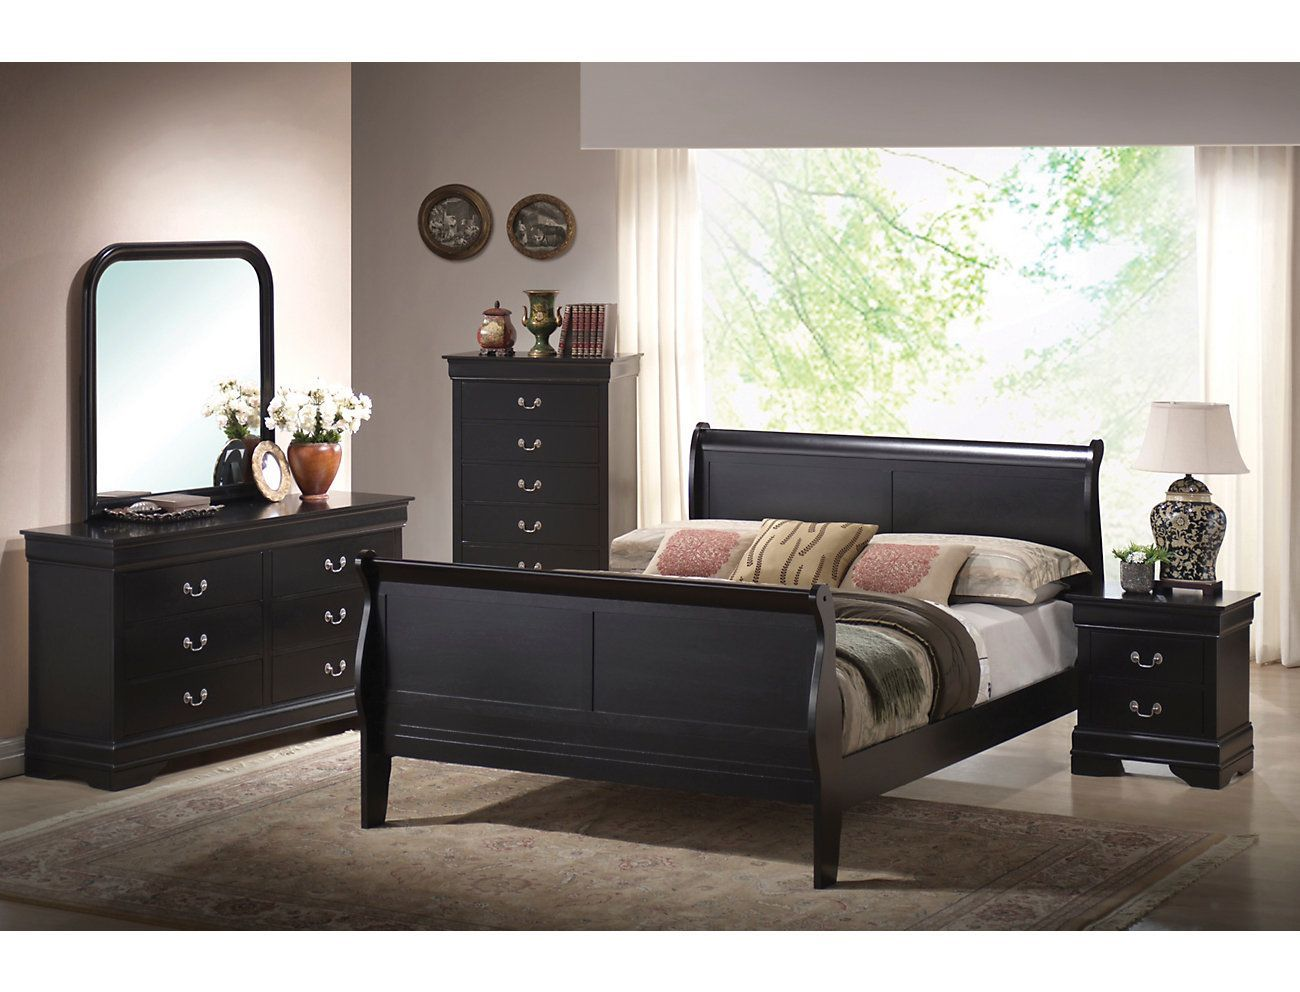 Philippe 3 Piece Queen Bedroom Set, Black | Outlet at Art ...